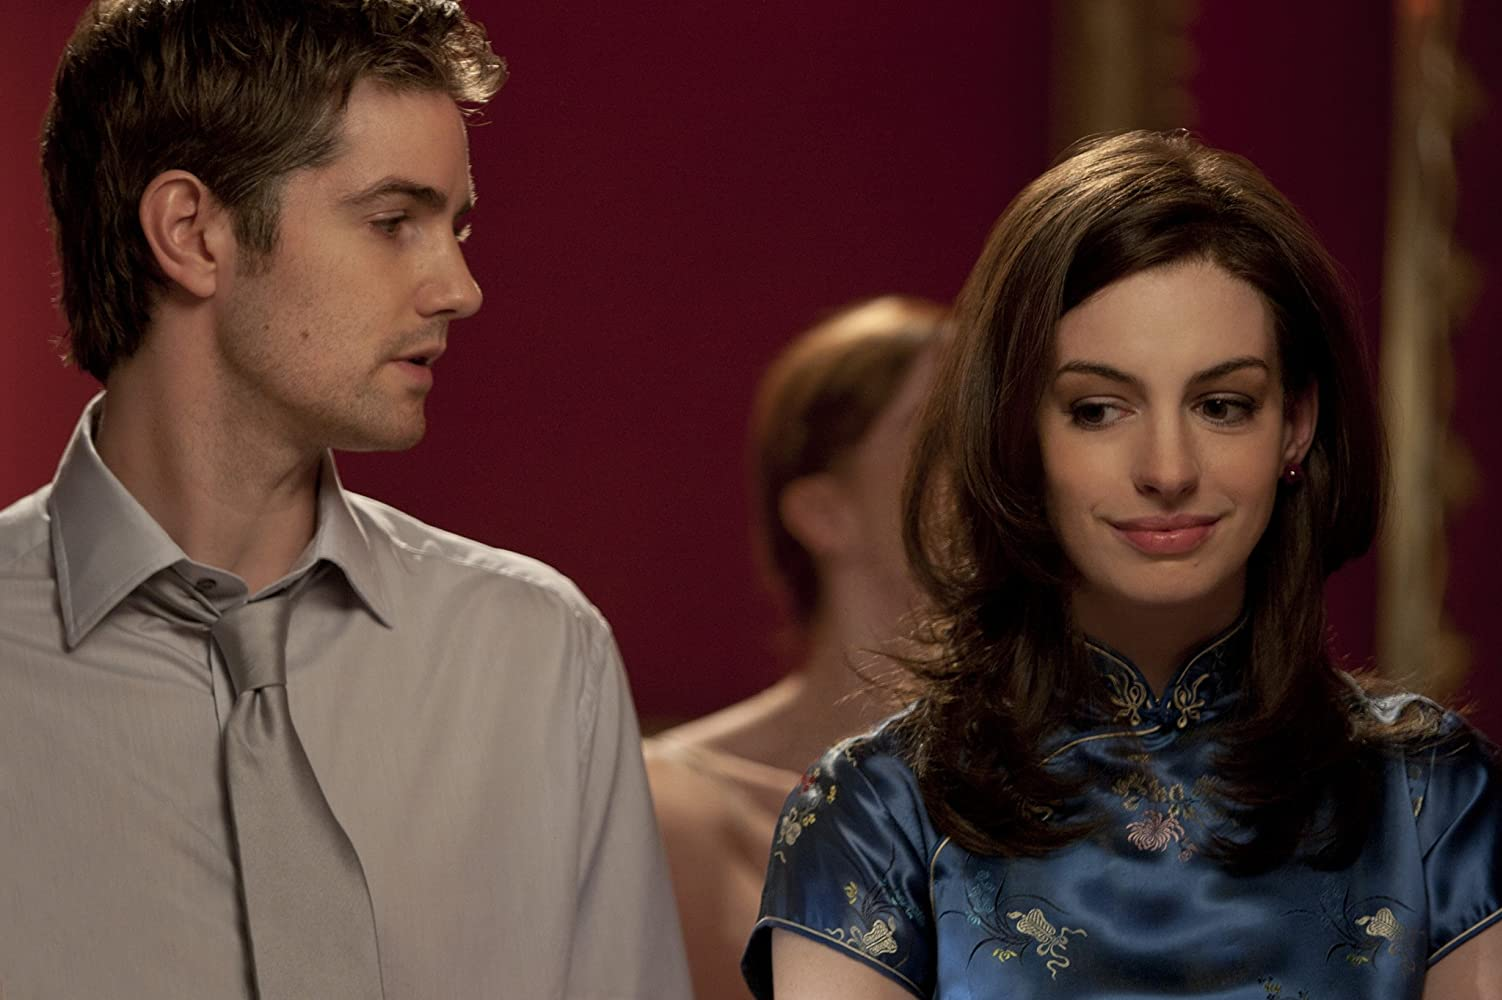 Anne Hathaway and Jim Sturgess in One Day (2011)